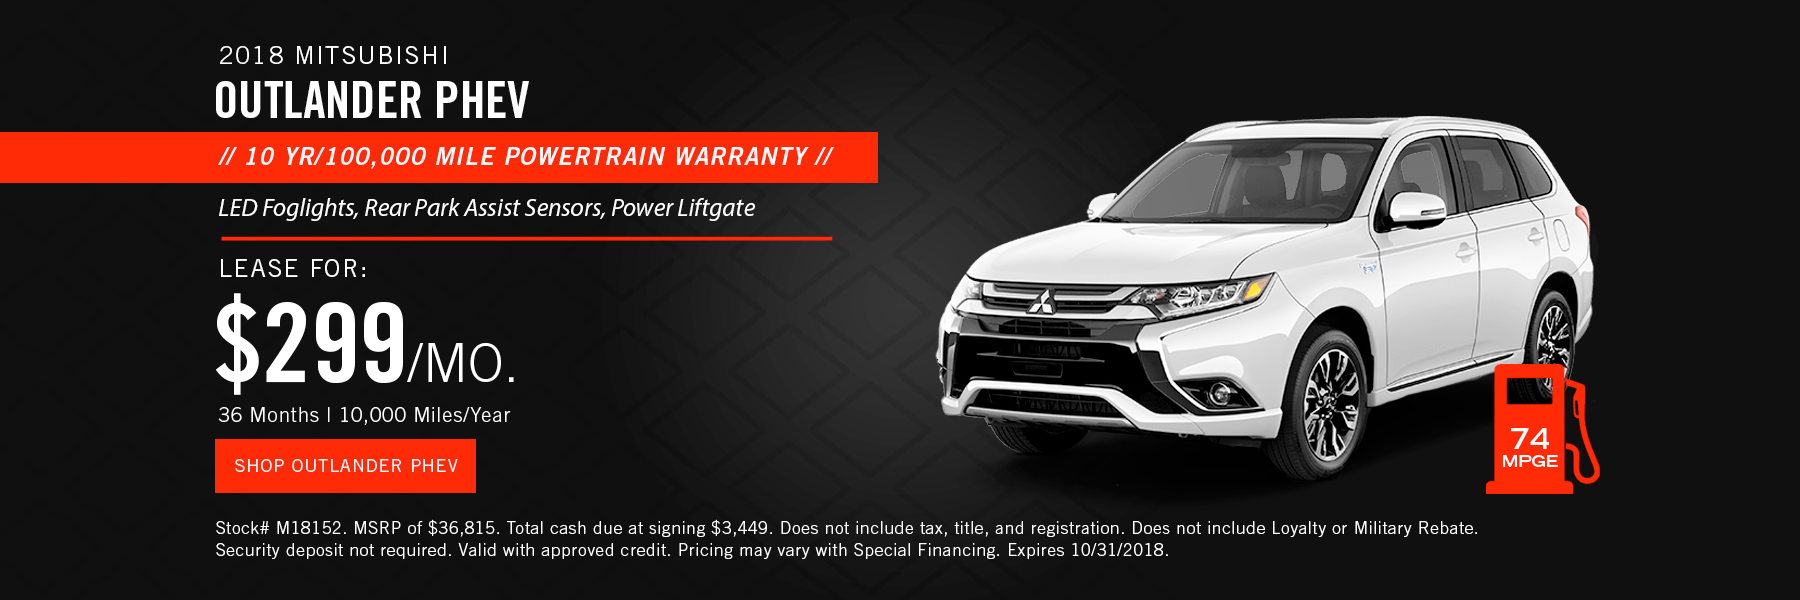 Mitsubishi Outlander PHEV Lease Offer